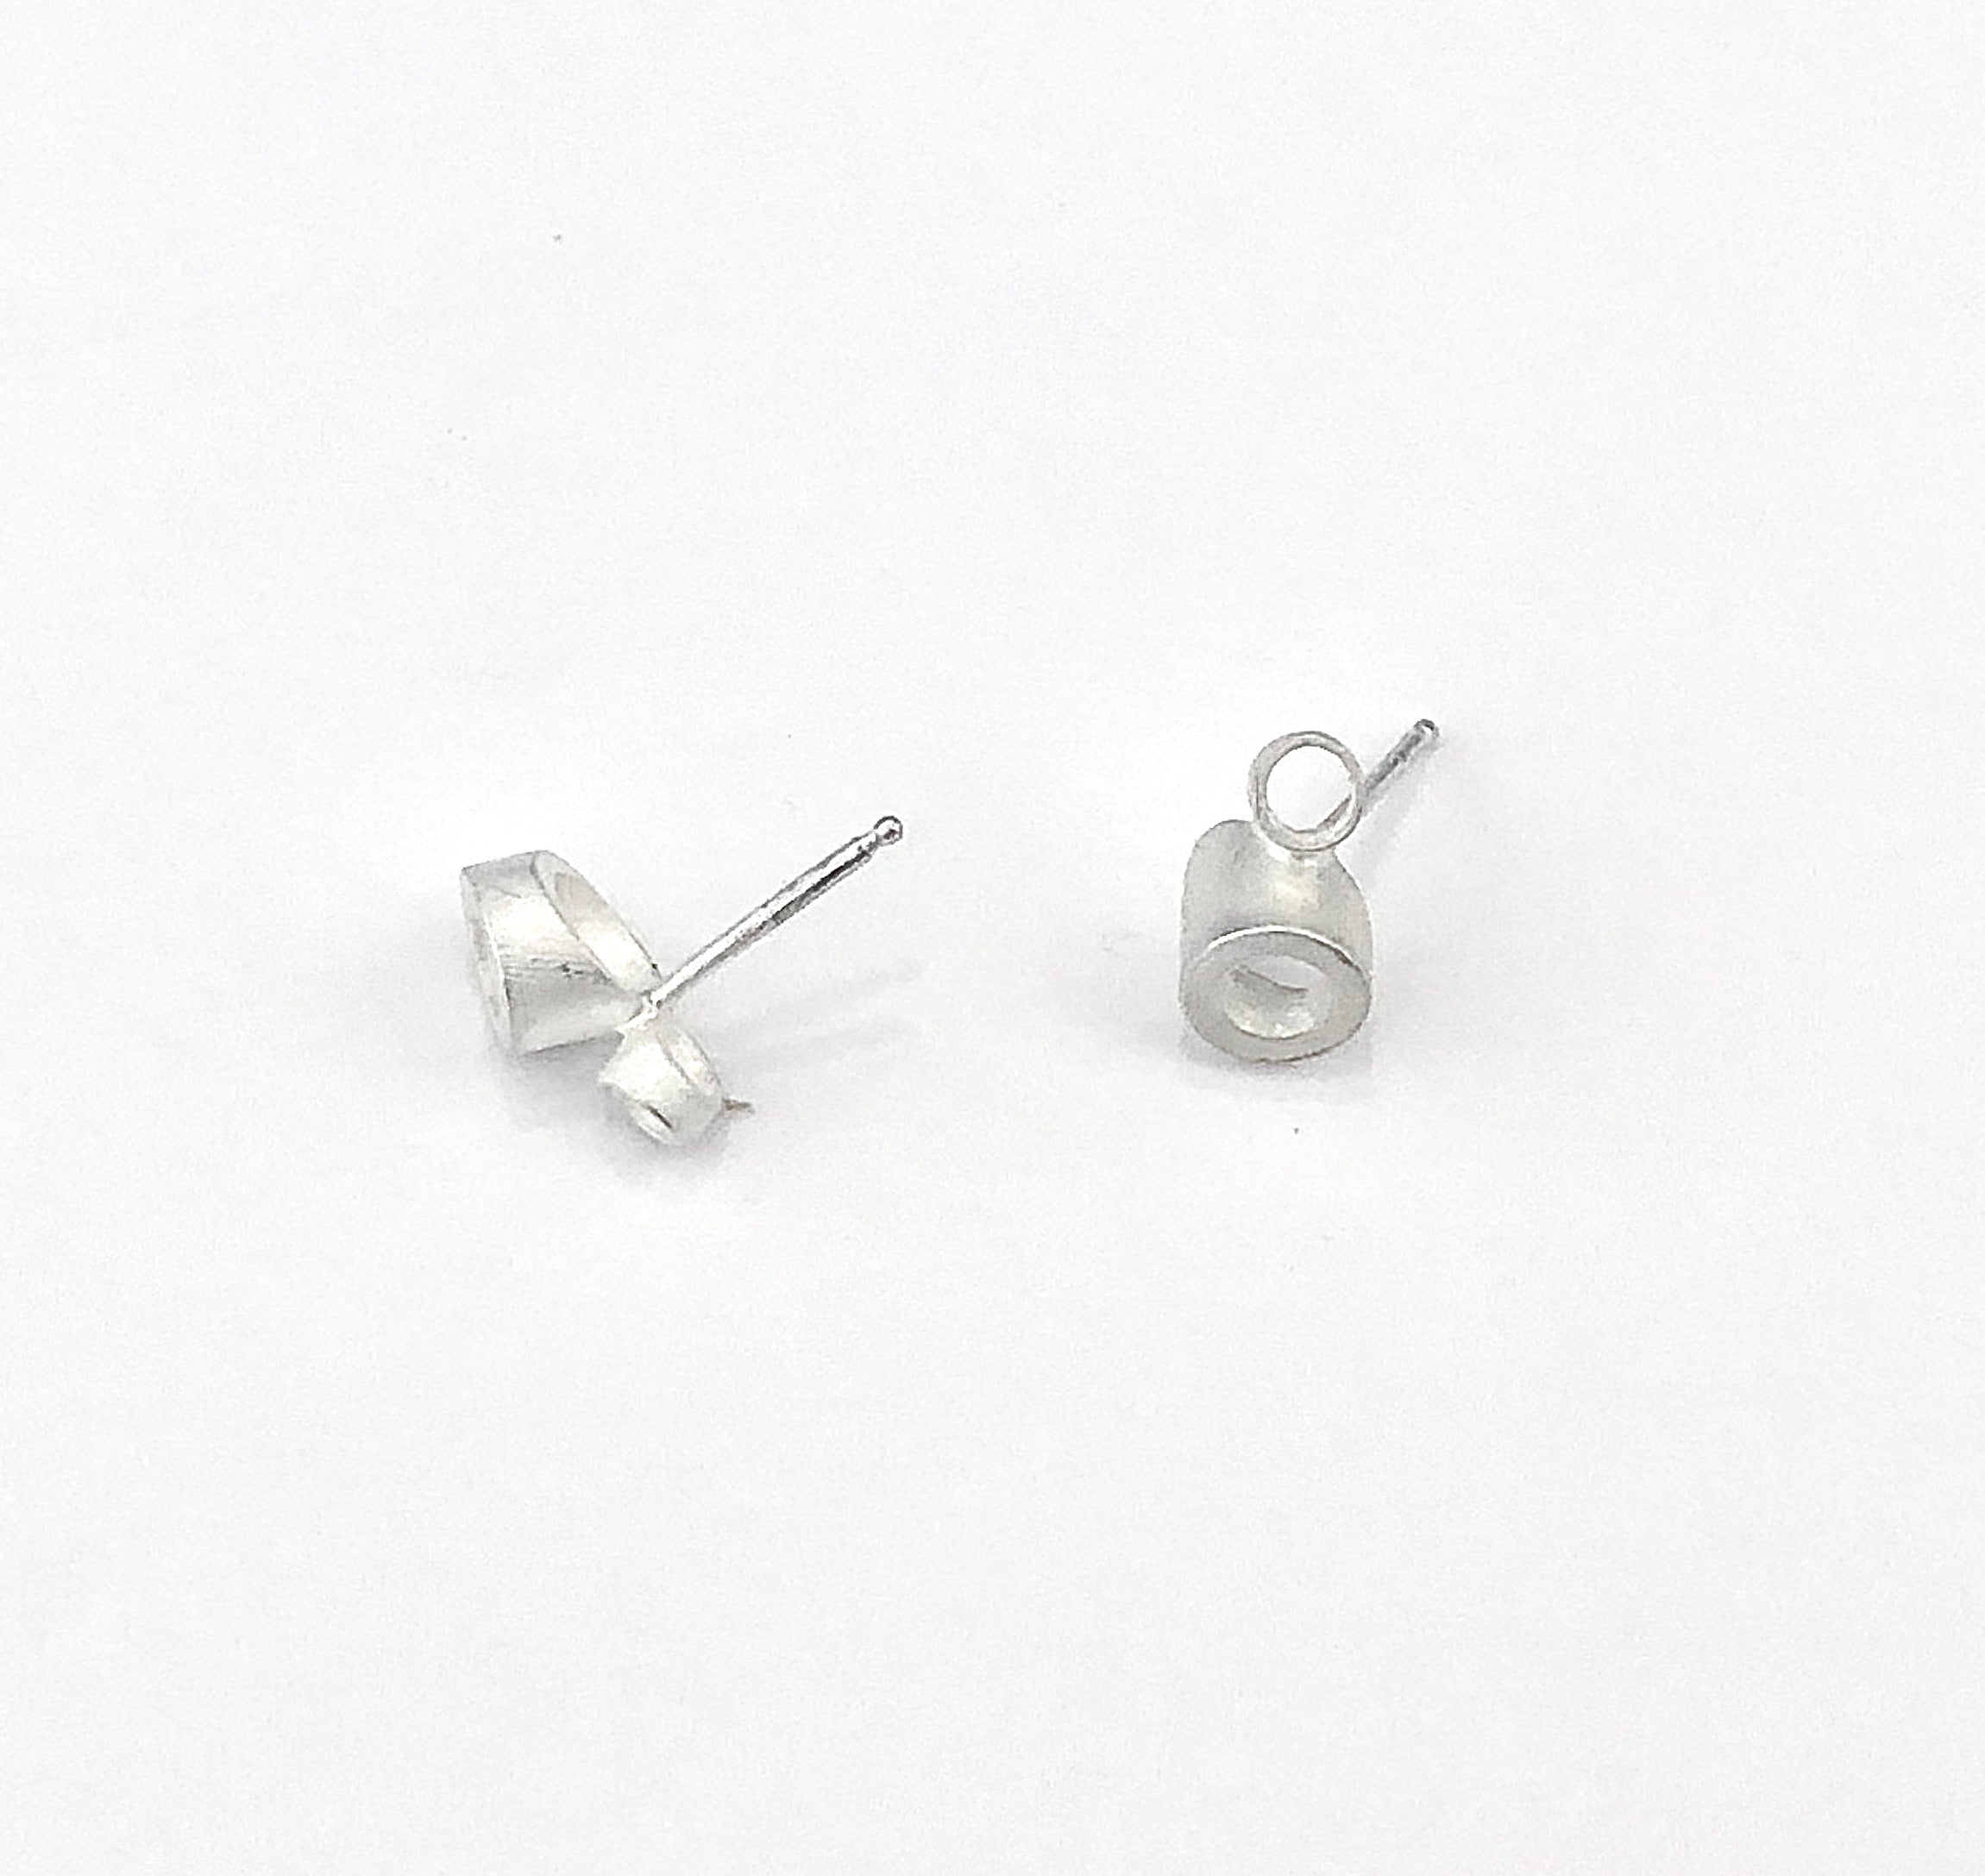 Double Angled Tube Post Earrings in oxidized silver